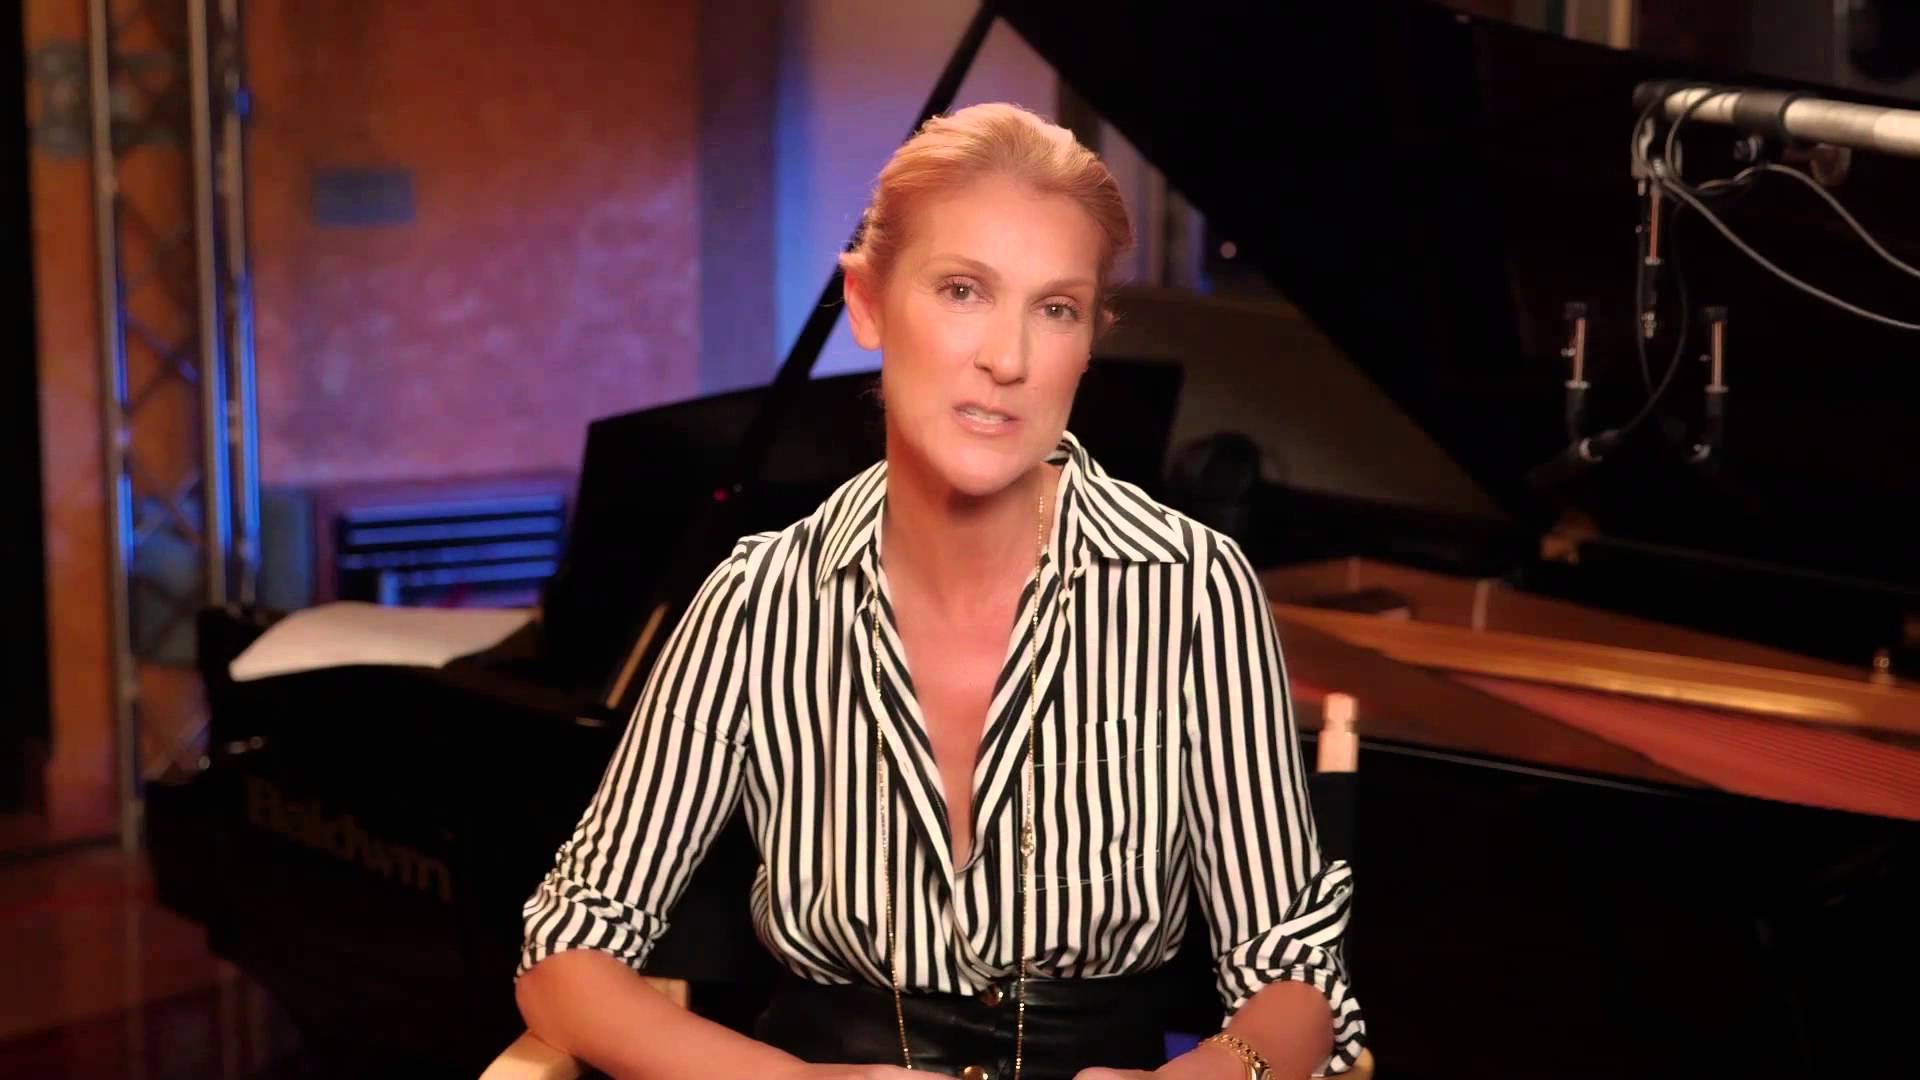 Celine Dion fans: Here's how YOU can appear in her Las Vegas show